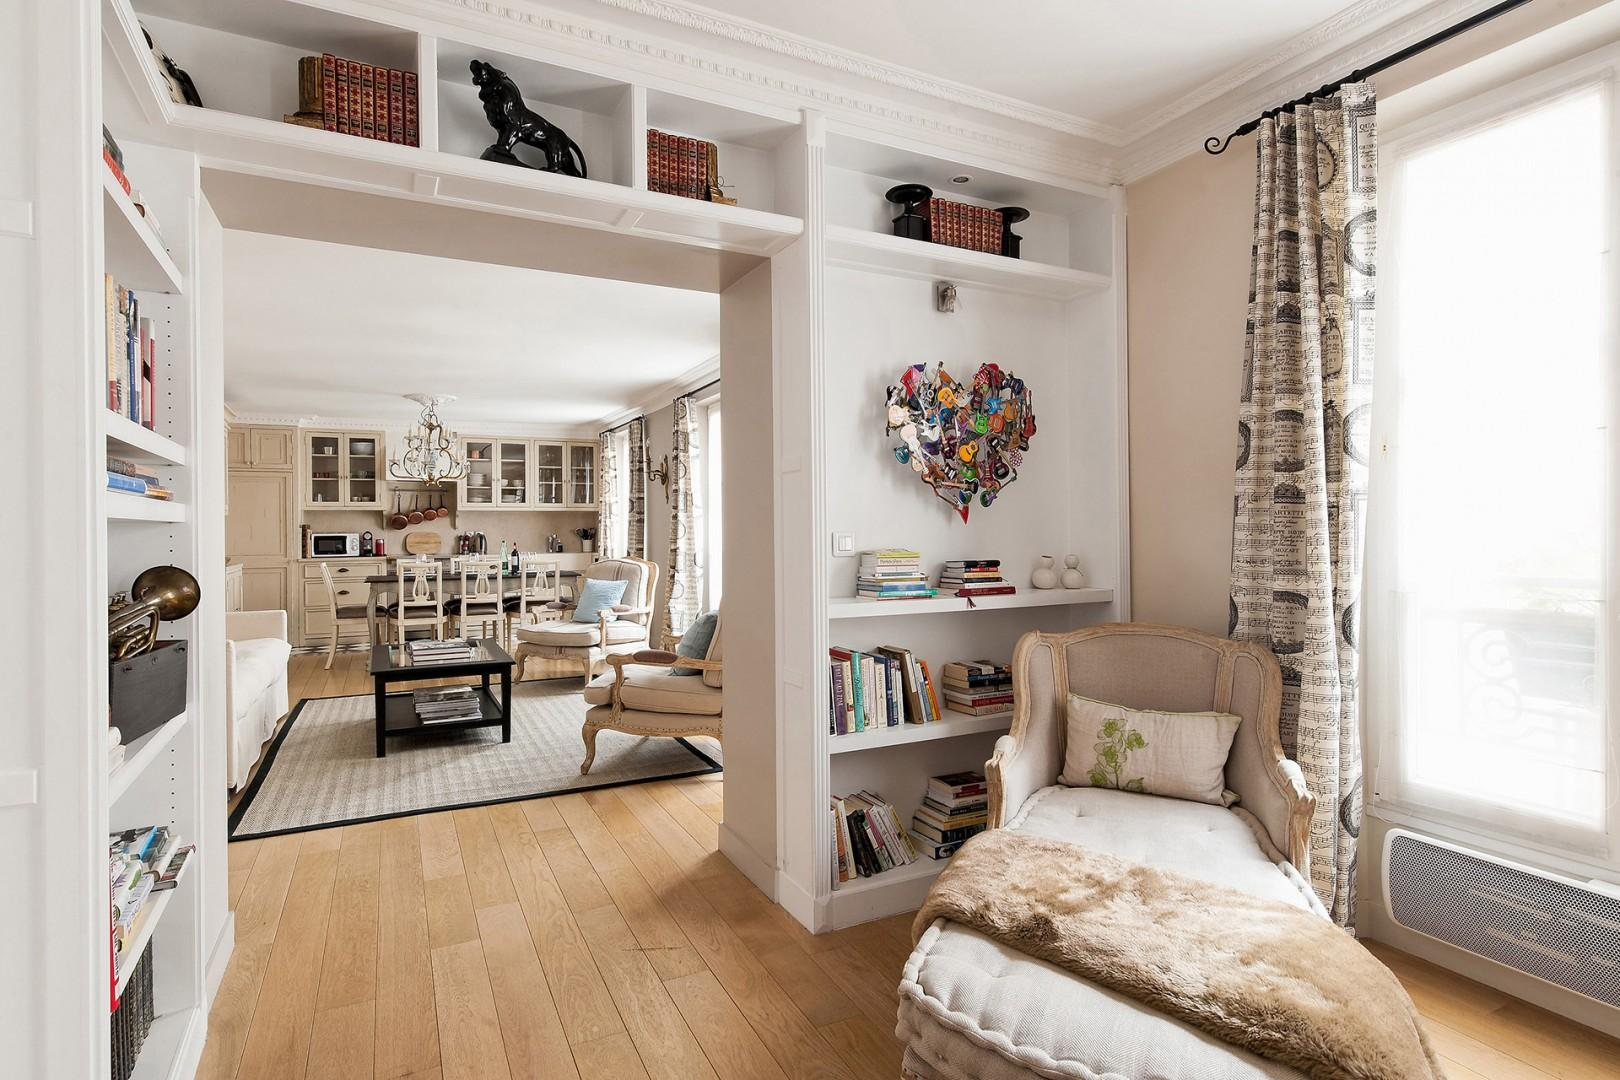 The bright sitting room is the perfect spot to curl up with a book!